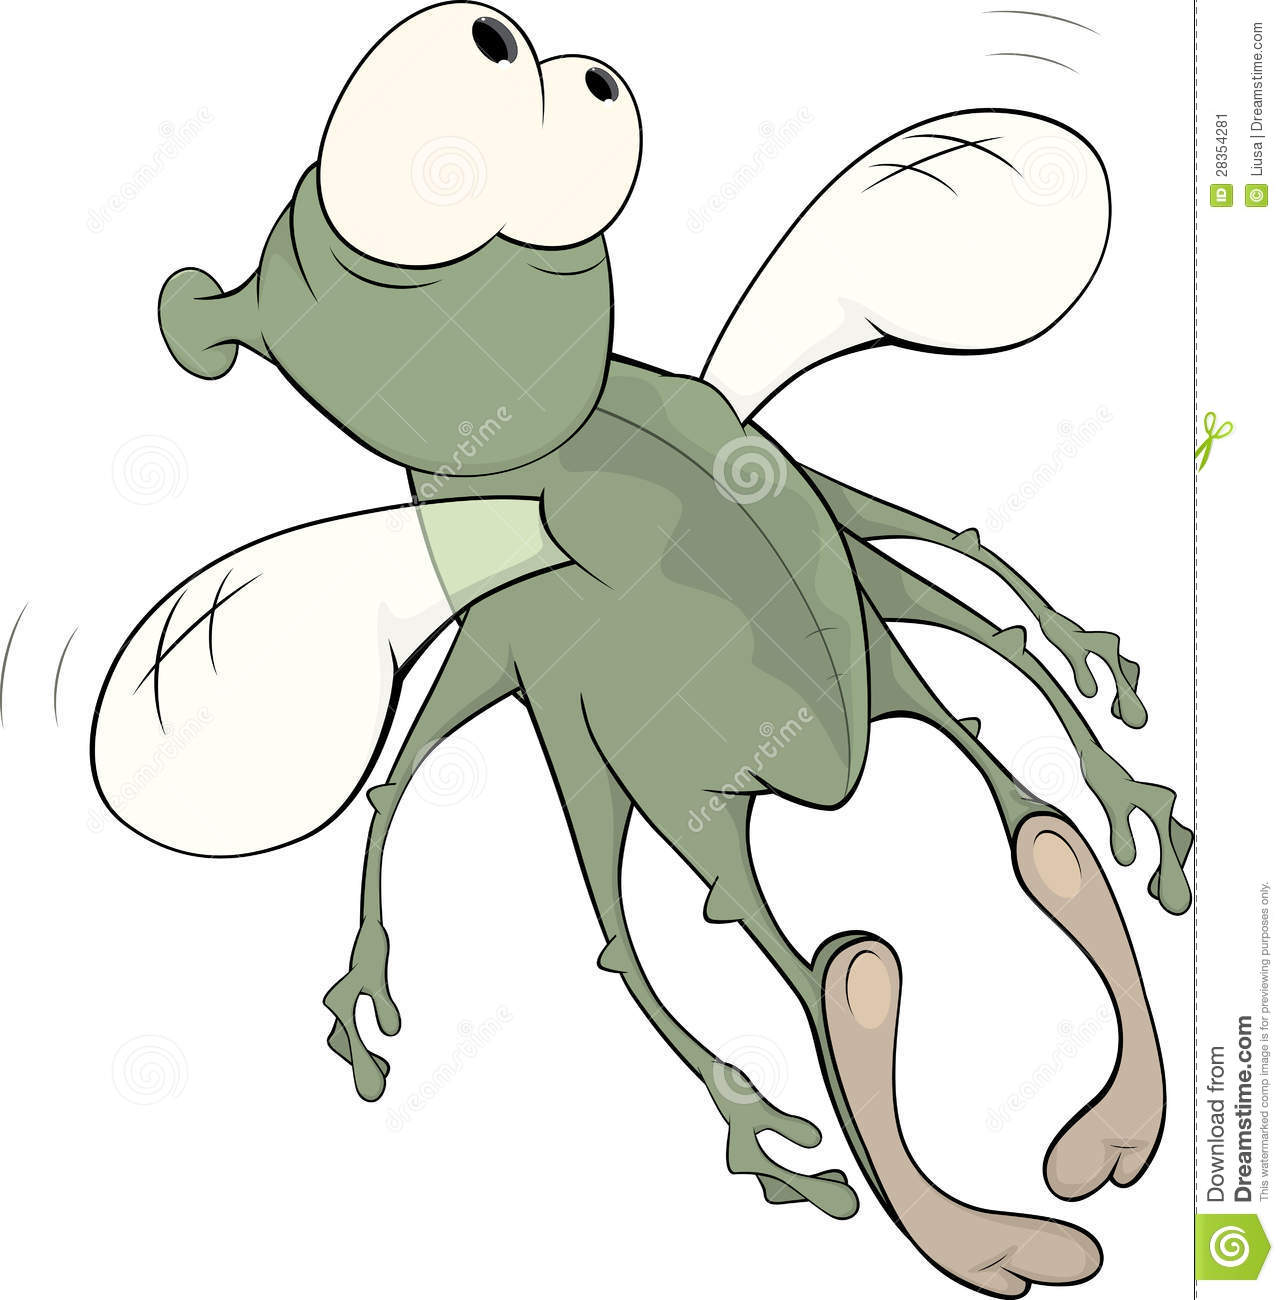 Stock image: green insect cartoon